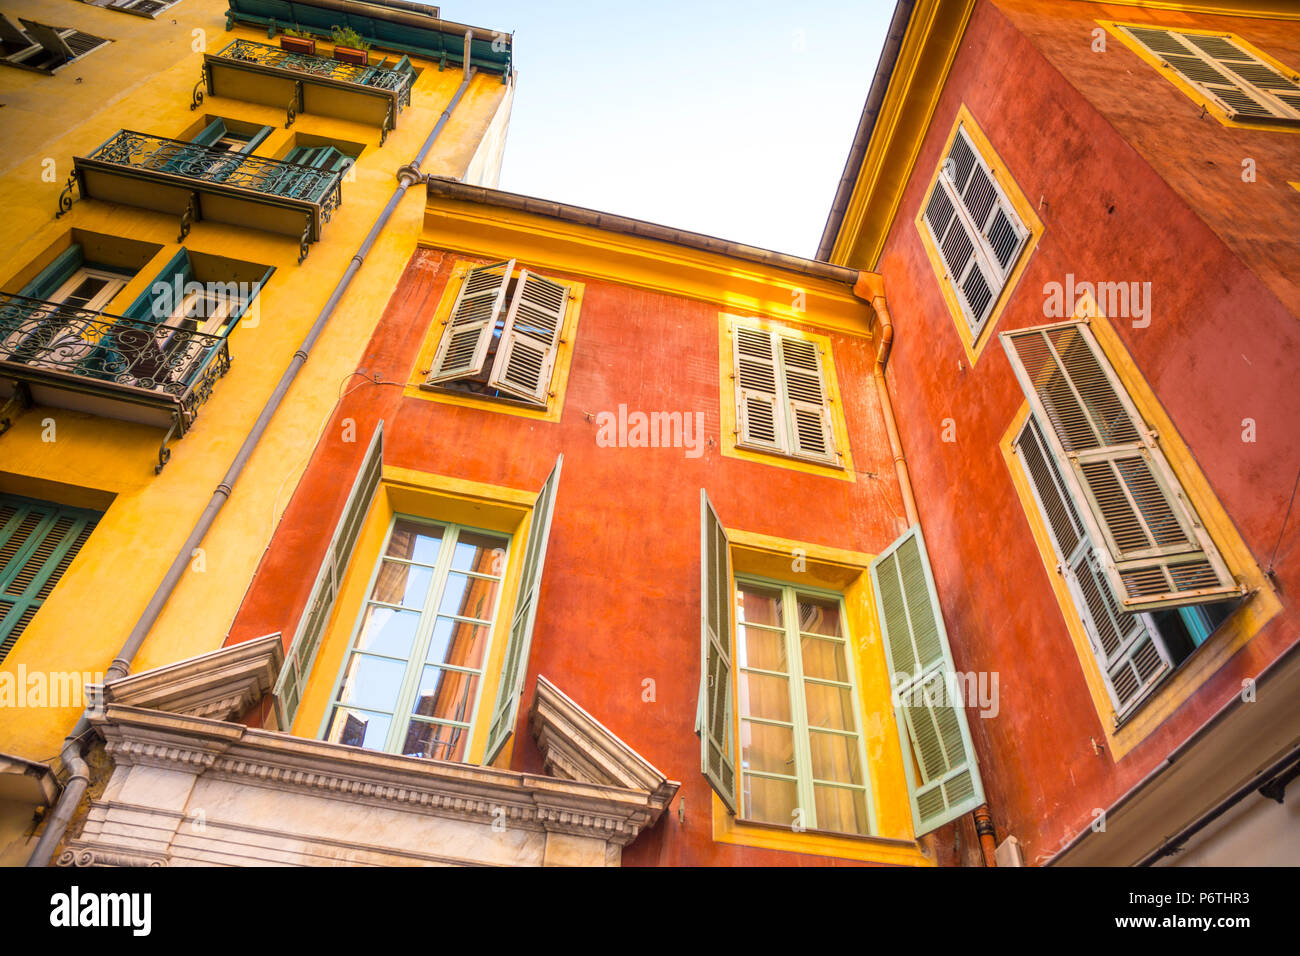 Nice, Alpes-Maritimes, Provence-Alpes-Cote D'Azur, French Riviera, France - Stock Image